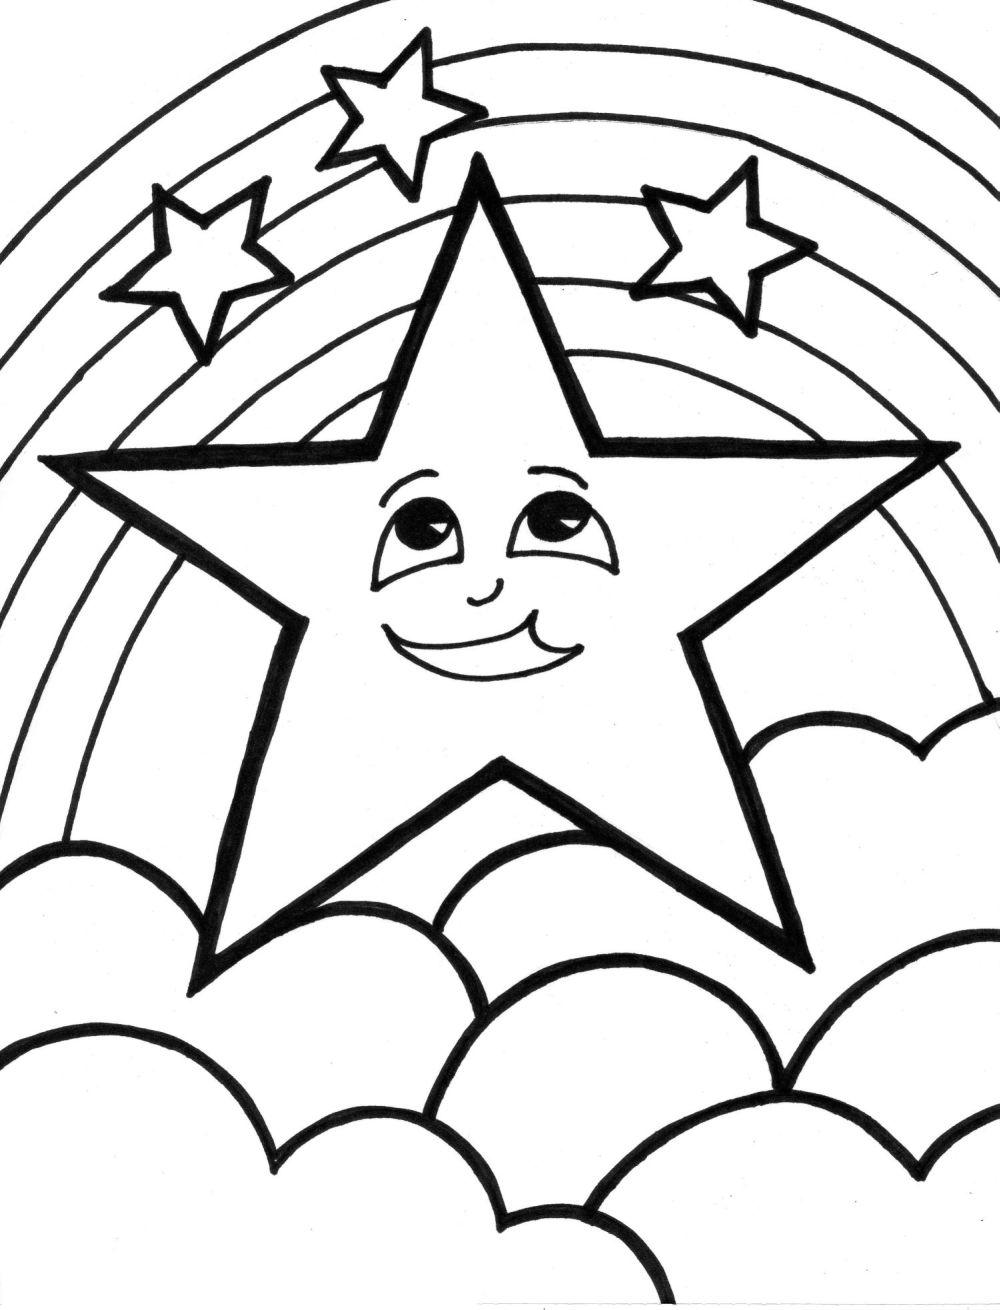 colouring pages of stars free printable star coloring pages for kids pages stars of colouring 1 1